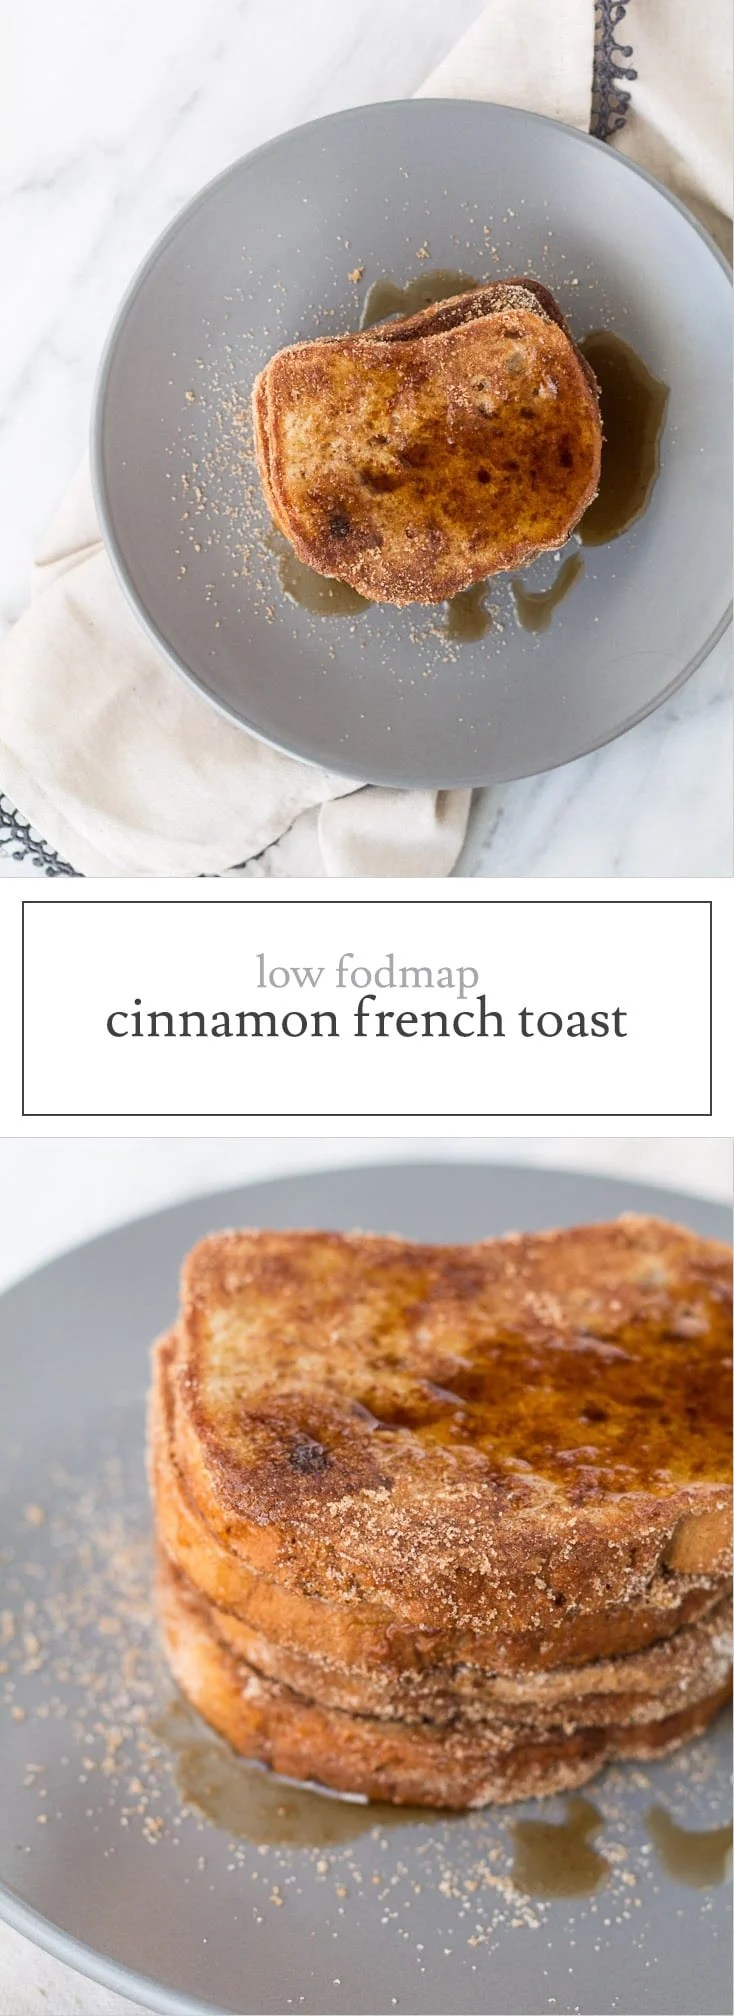 Dusted in cinnamon sugar and topped with maple syrup, this Low FODMAP Cinnamon French Toast is a delicious treat for breakfast or brunch!